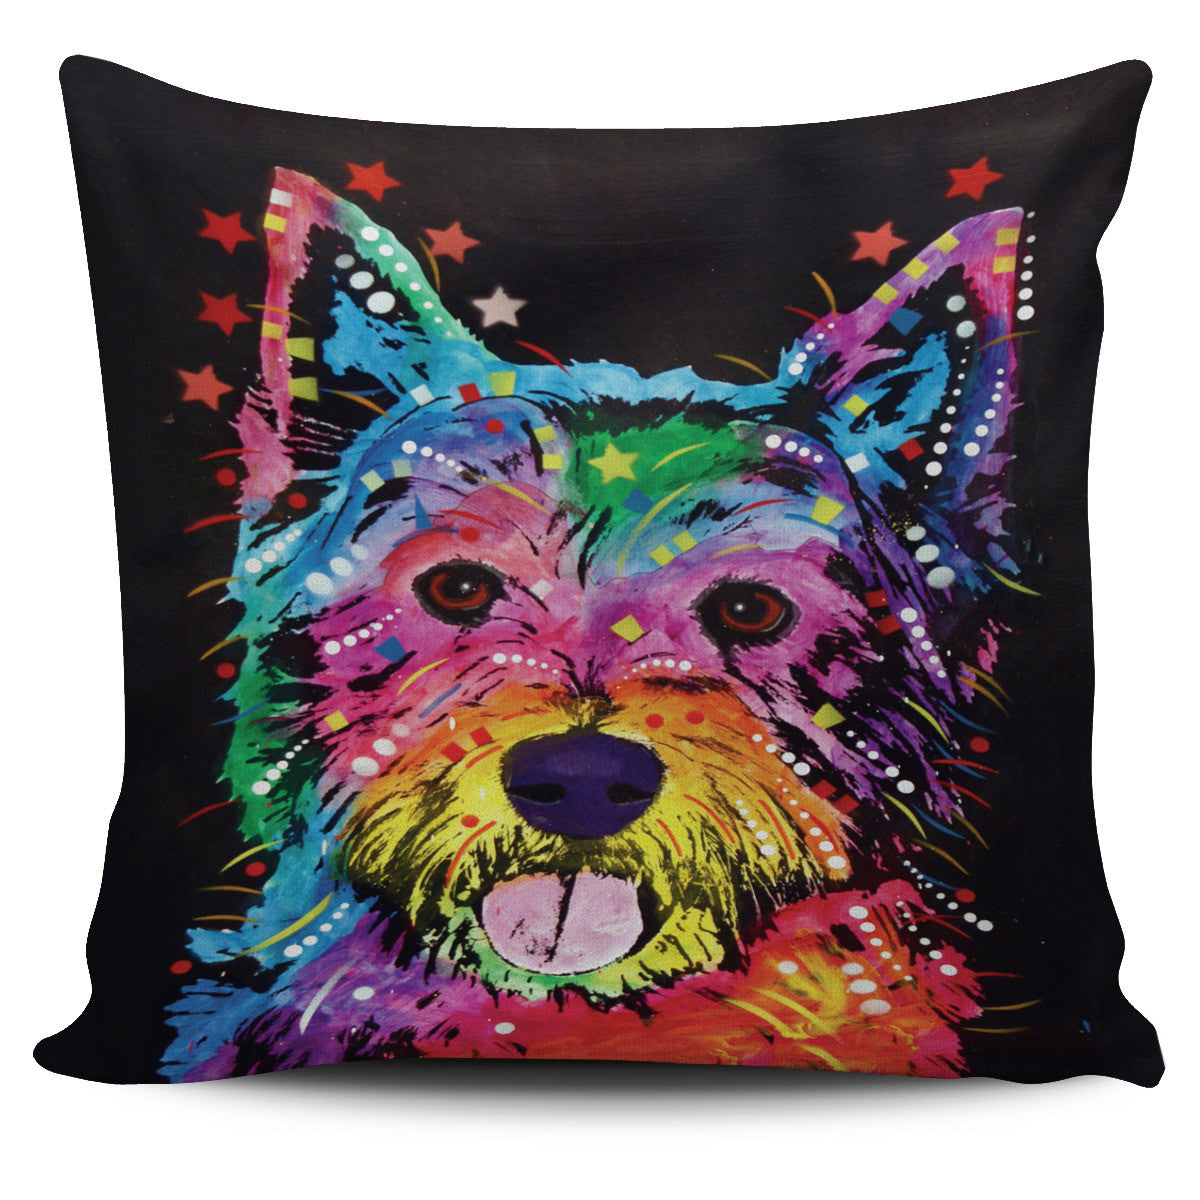 Westie Series Pillow Covers Offer